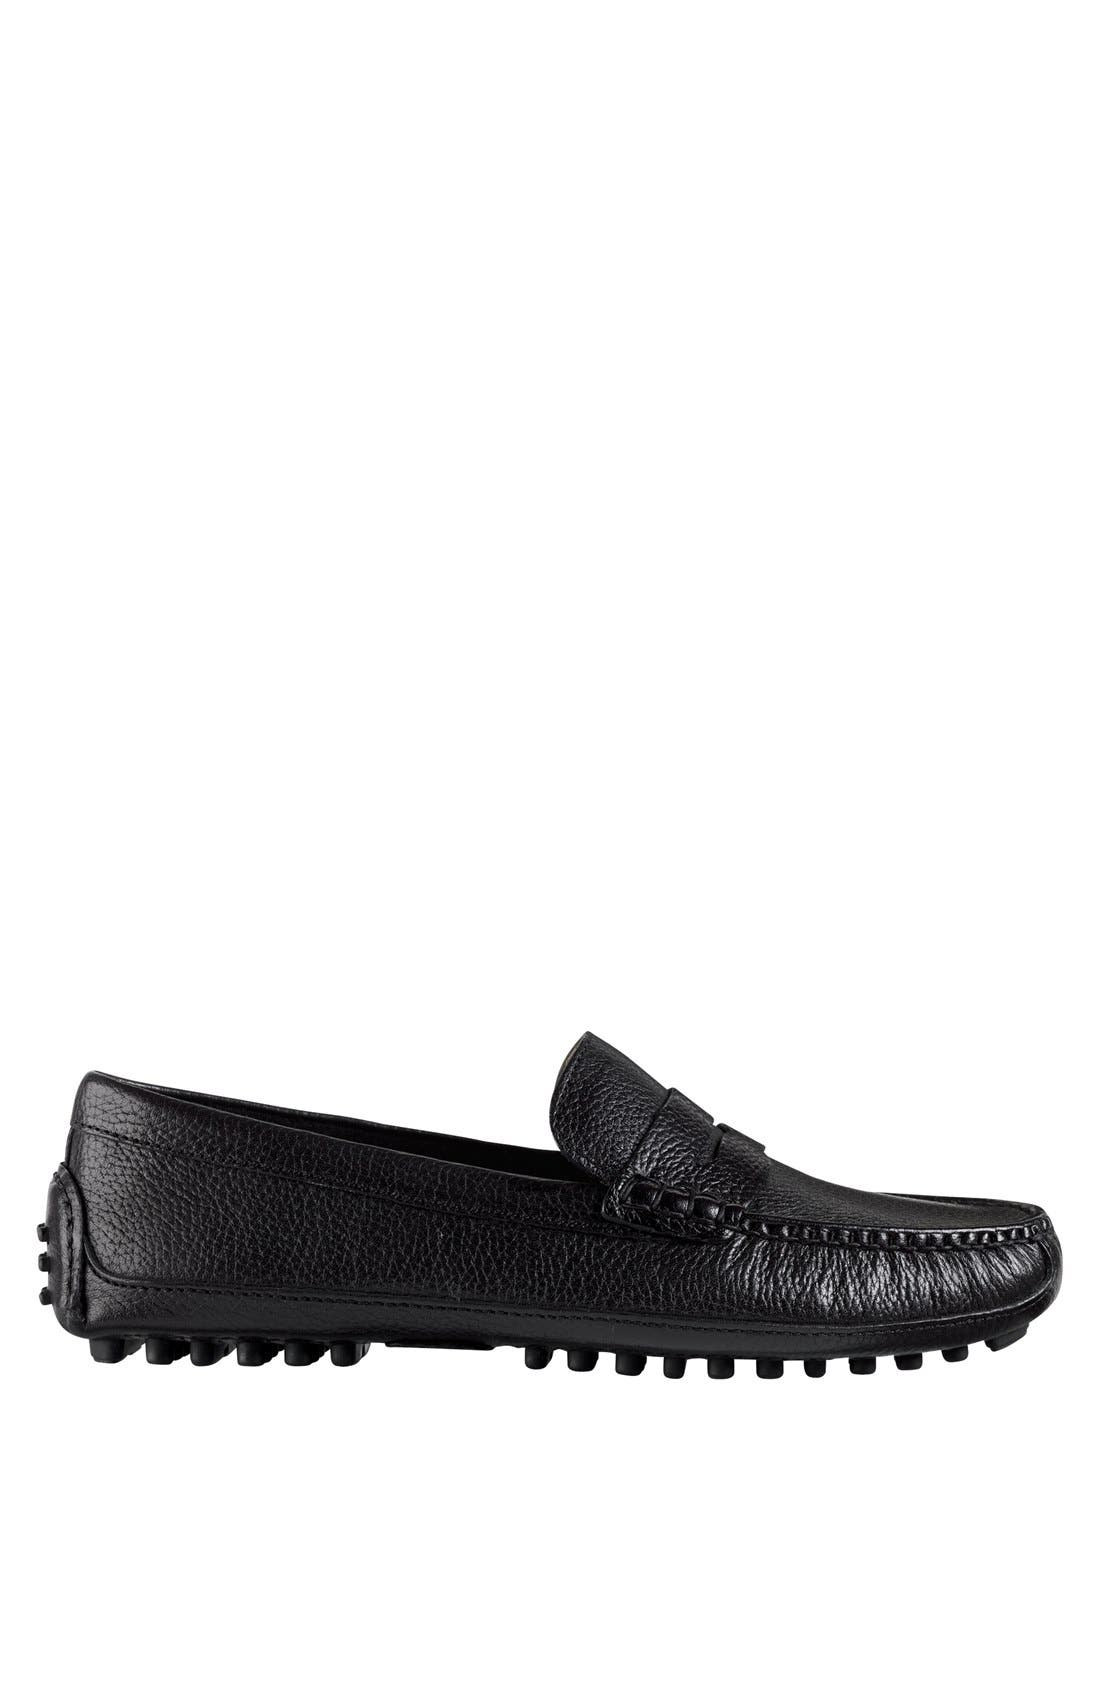 COLE HAAN, 'Grant Canoe' Penny Loafer, Alternate thumbnail 5, color, 001